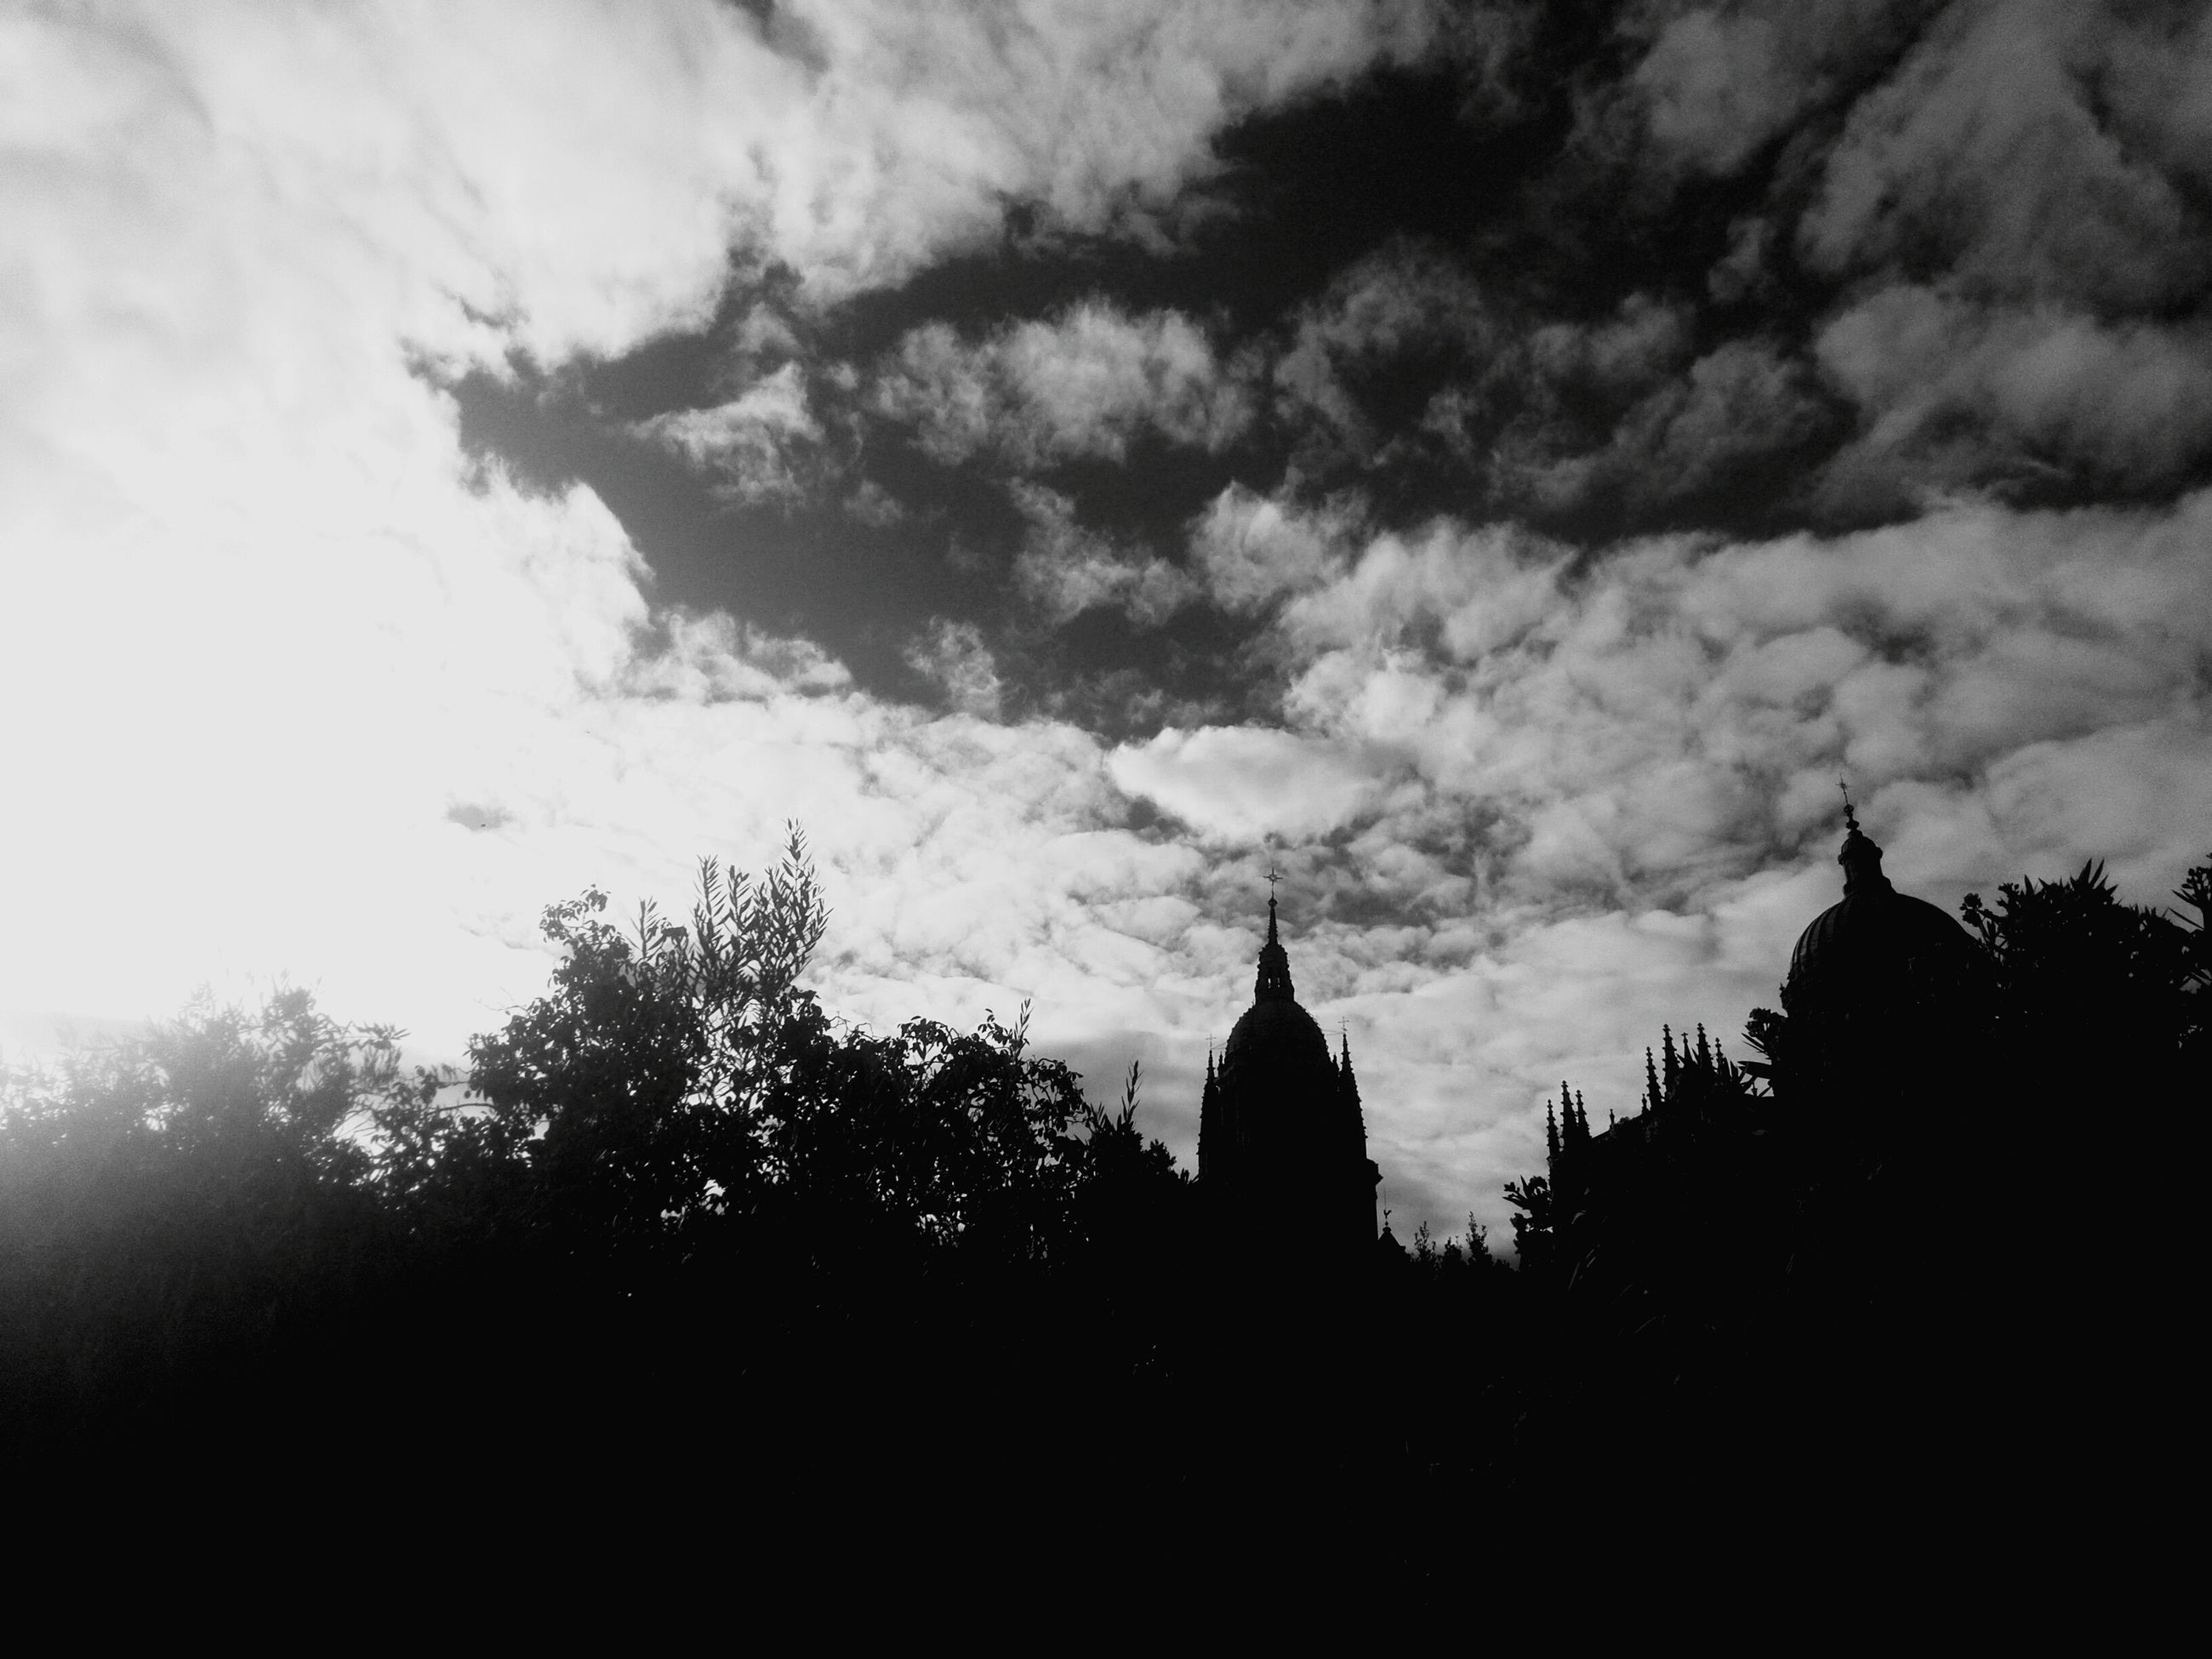 silhouette, architecture, building exterior, built structure, sky, religion, place of worship, spirituality, tree, church, cloud - sky, cloudy, low angle view, cloud, outdoors, no people, history, cathedral